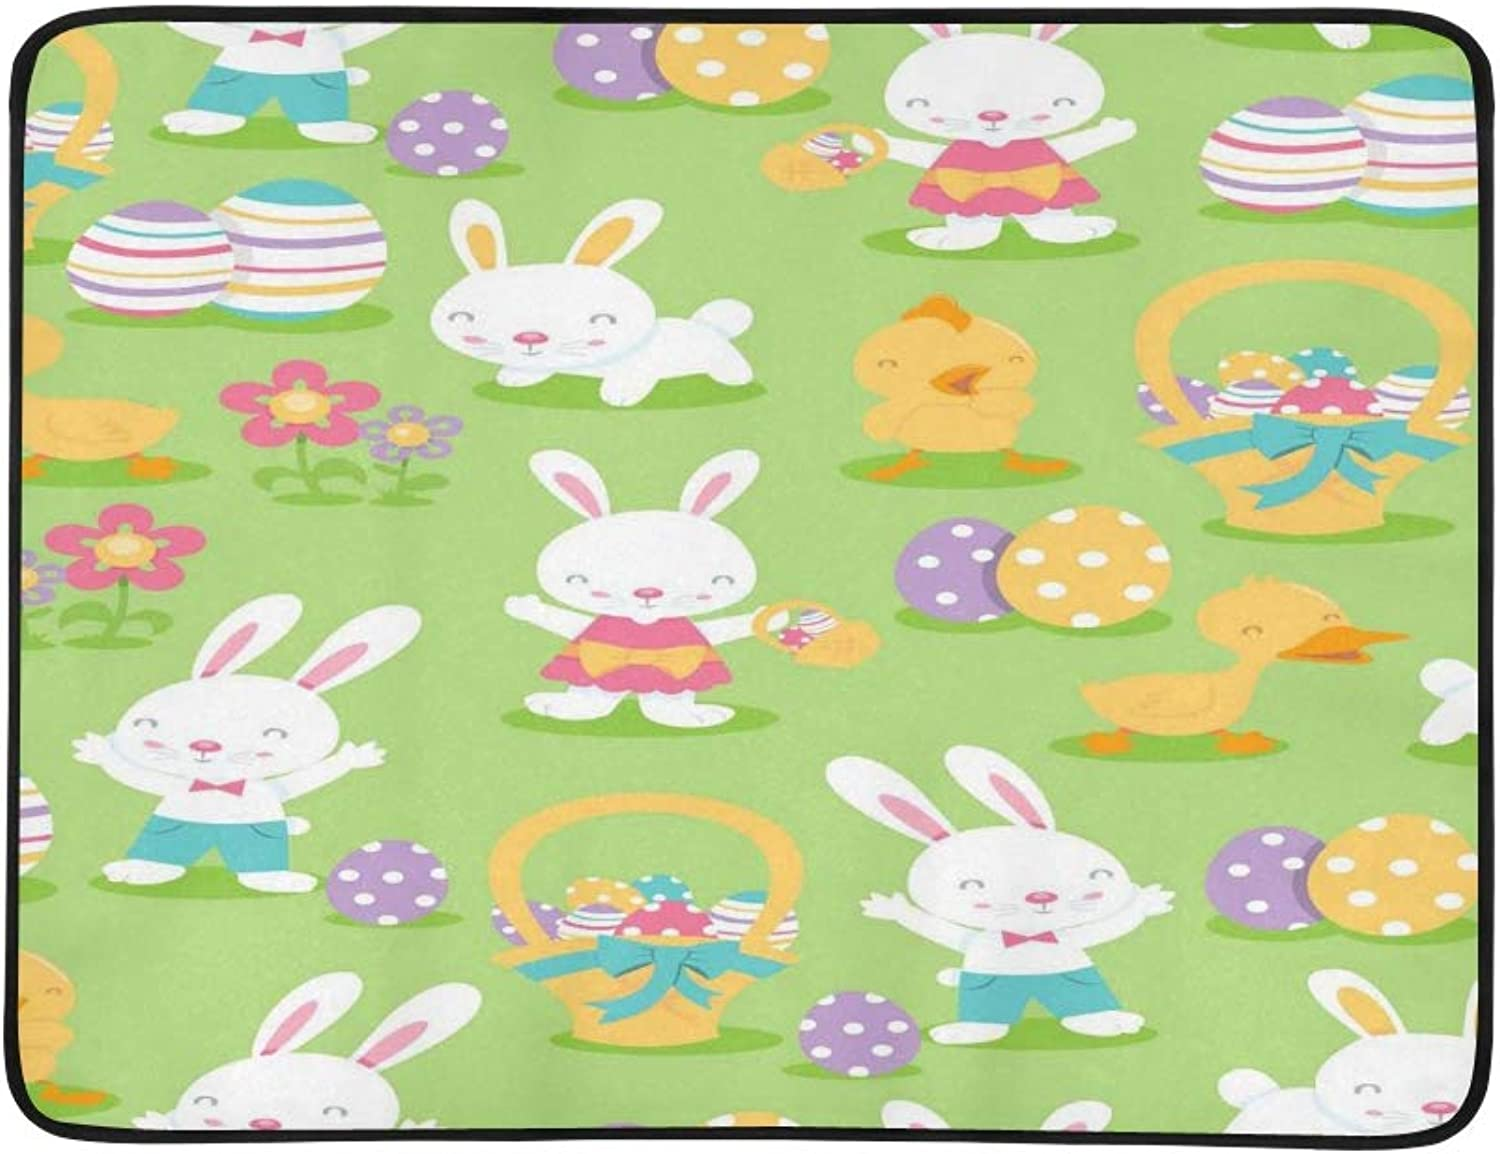 A Vector Illustration of Super Cute Easter Theme S Pattern Portable and Foldable Blanket Mat 60x78 Inch Handy Mat for Camping Picnic Beach Indoor Outdoor Travel